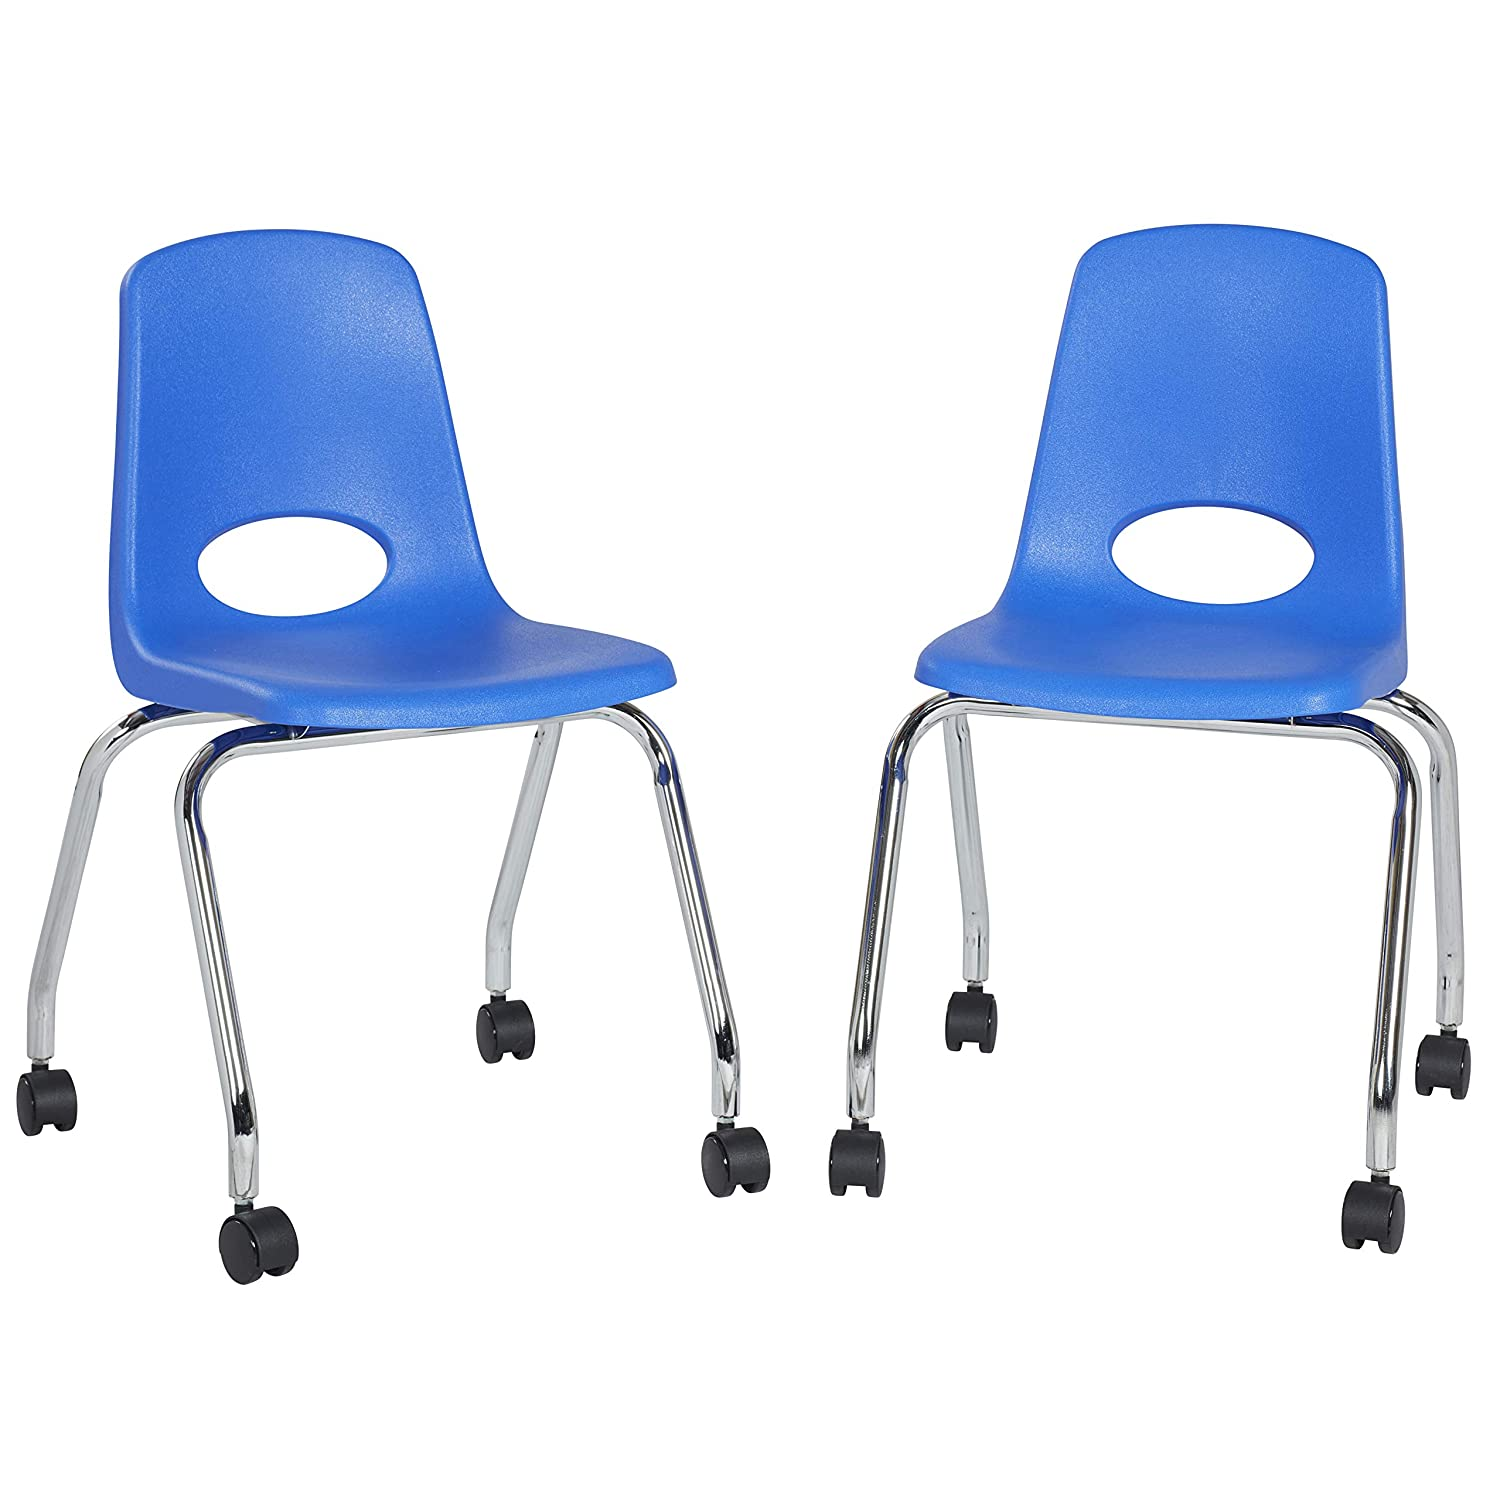 "FDP 18"" Mobile School Chair with Wheels for Kids, Teens and Adults; Ergonomic Seat for in-Home Learning, Classroom or Office - Blue (2-Pack)"